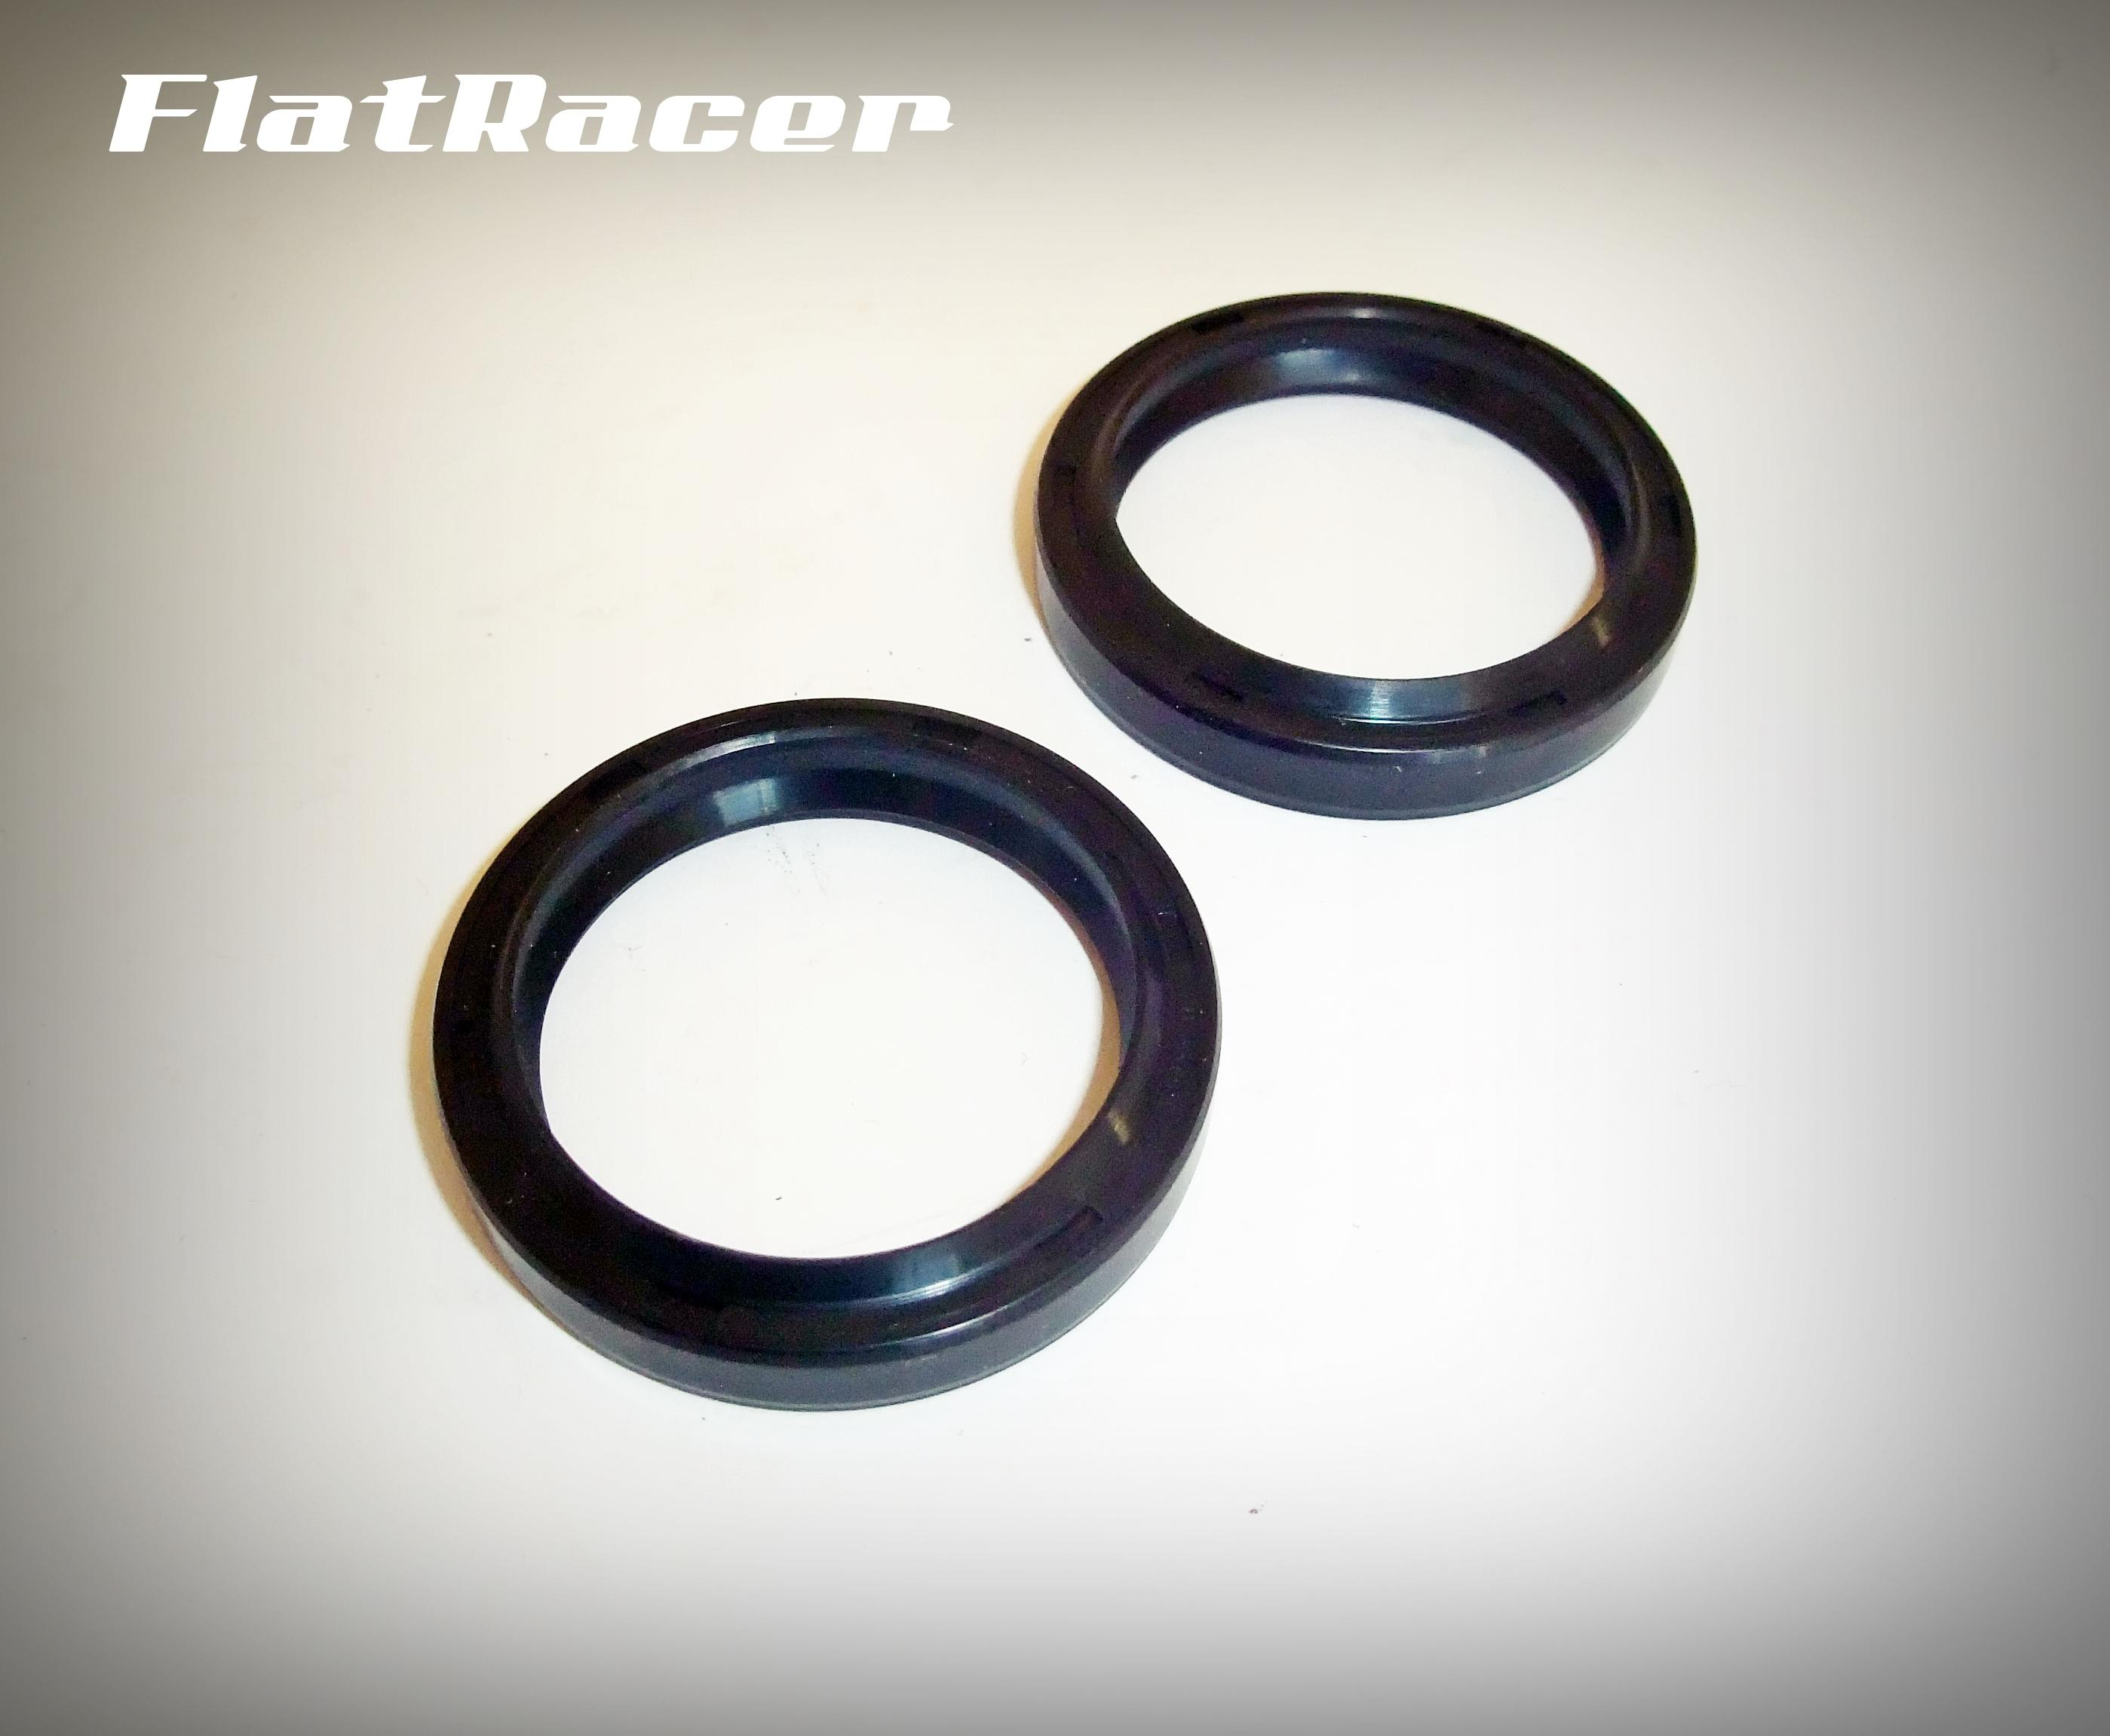 FlatRacer BMW R2v /5, /6 & /7 Series (70-84) OEM fork seals (pair)